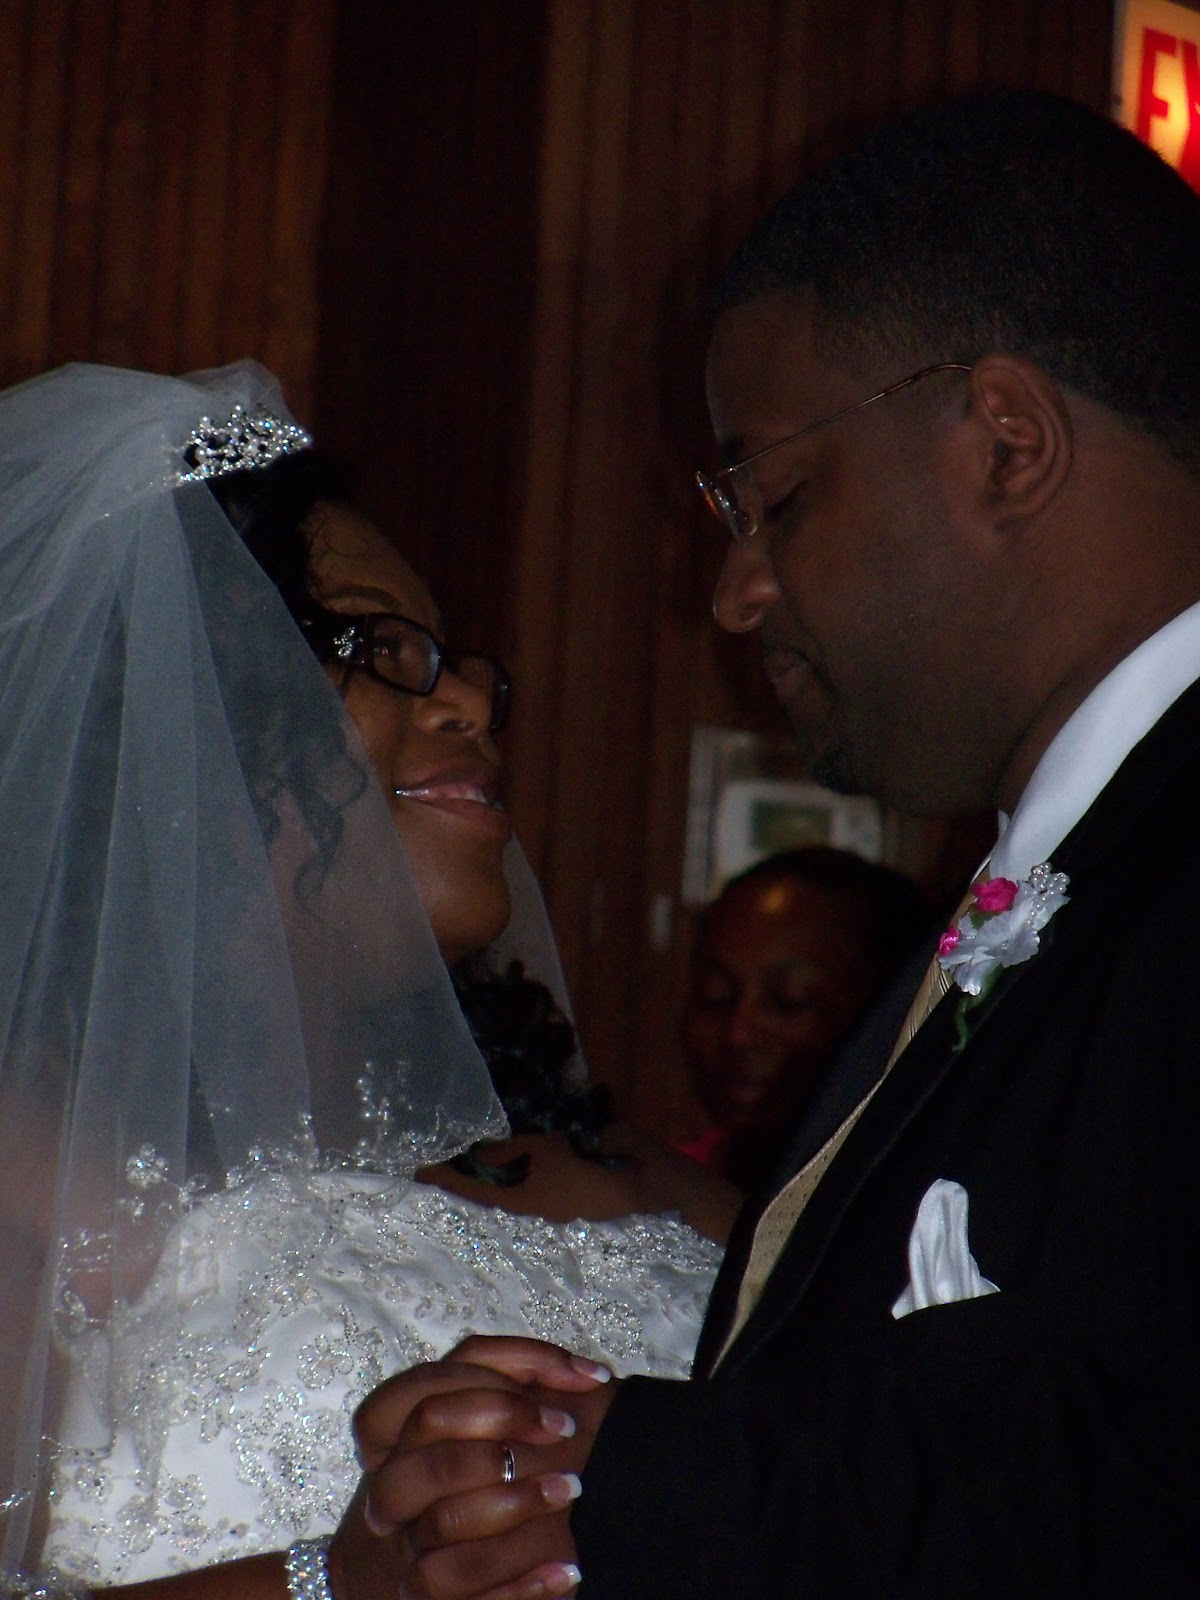 MeChaia Lunn and Clyde Longs wedding - 101_4614.JPG